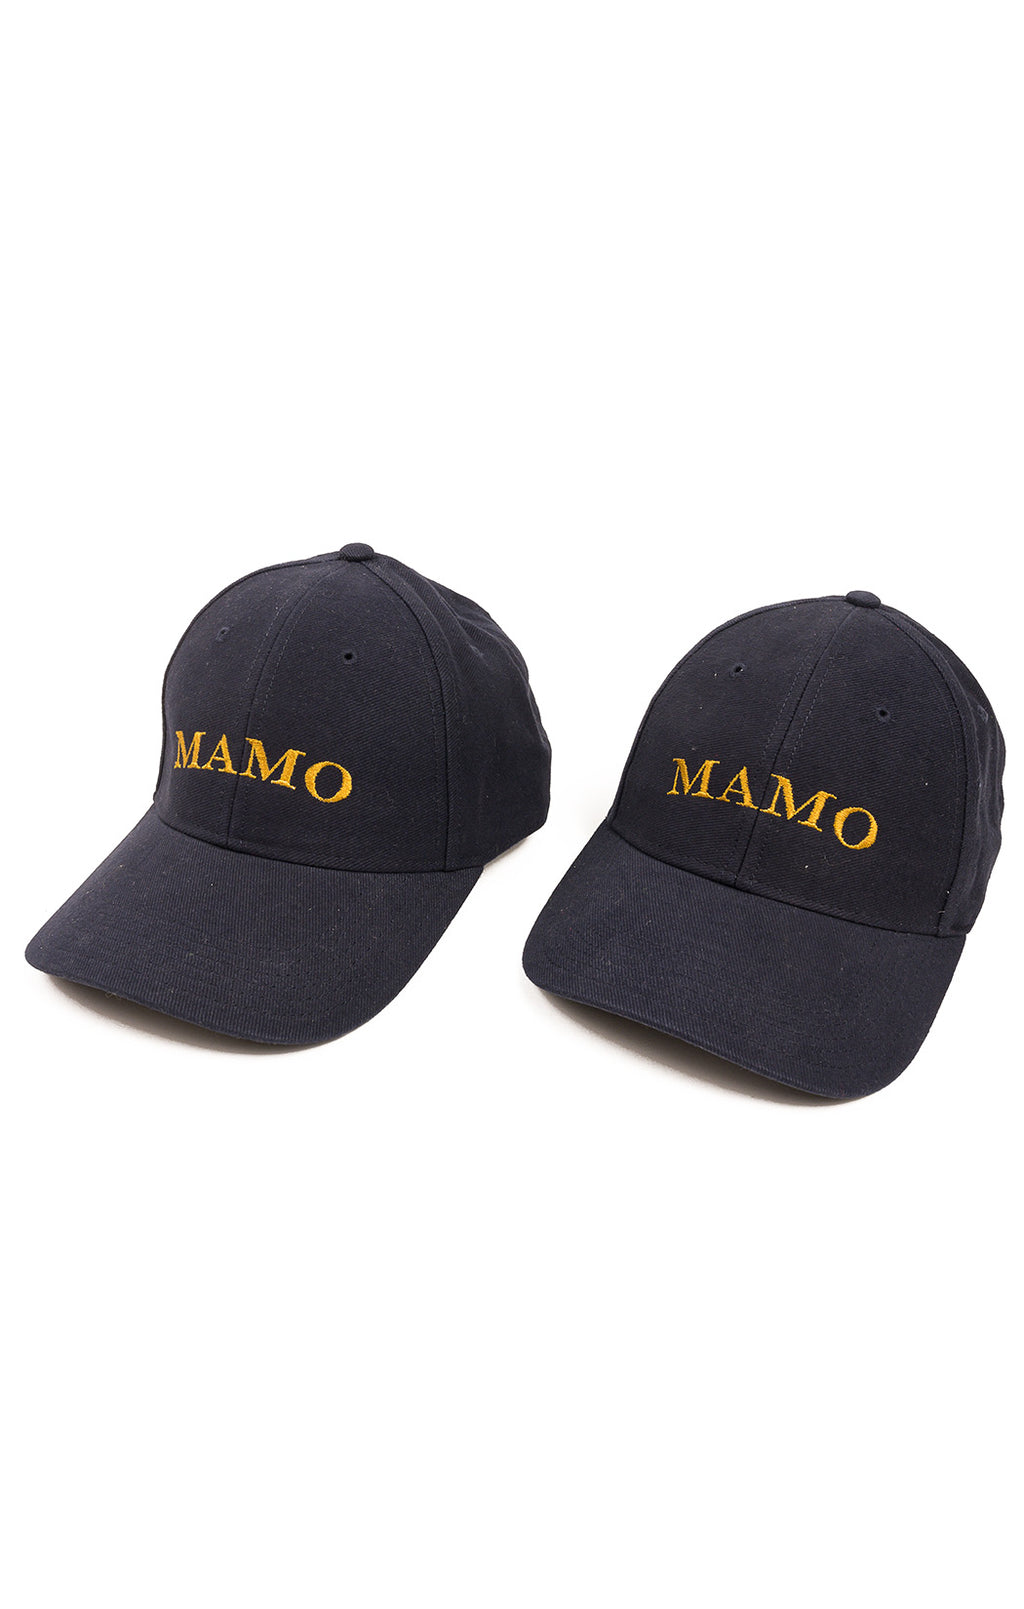 Front view of MAMO Baseball hat Size: O/S